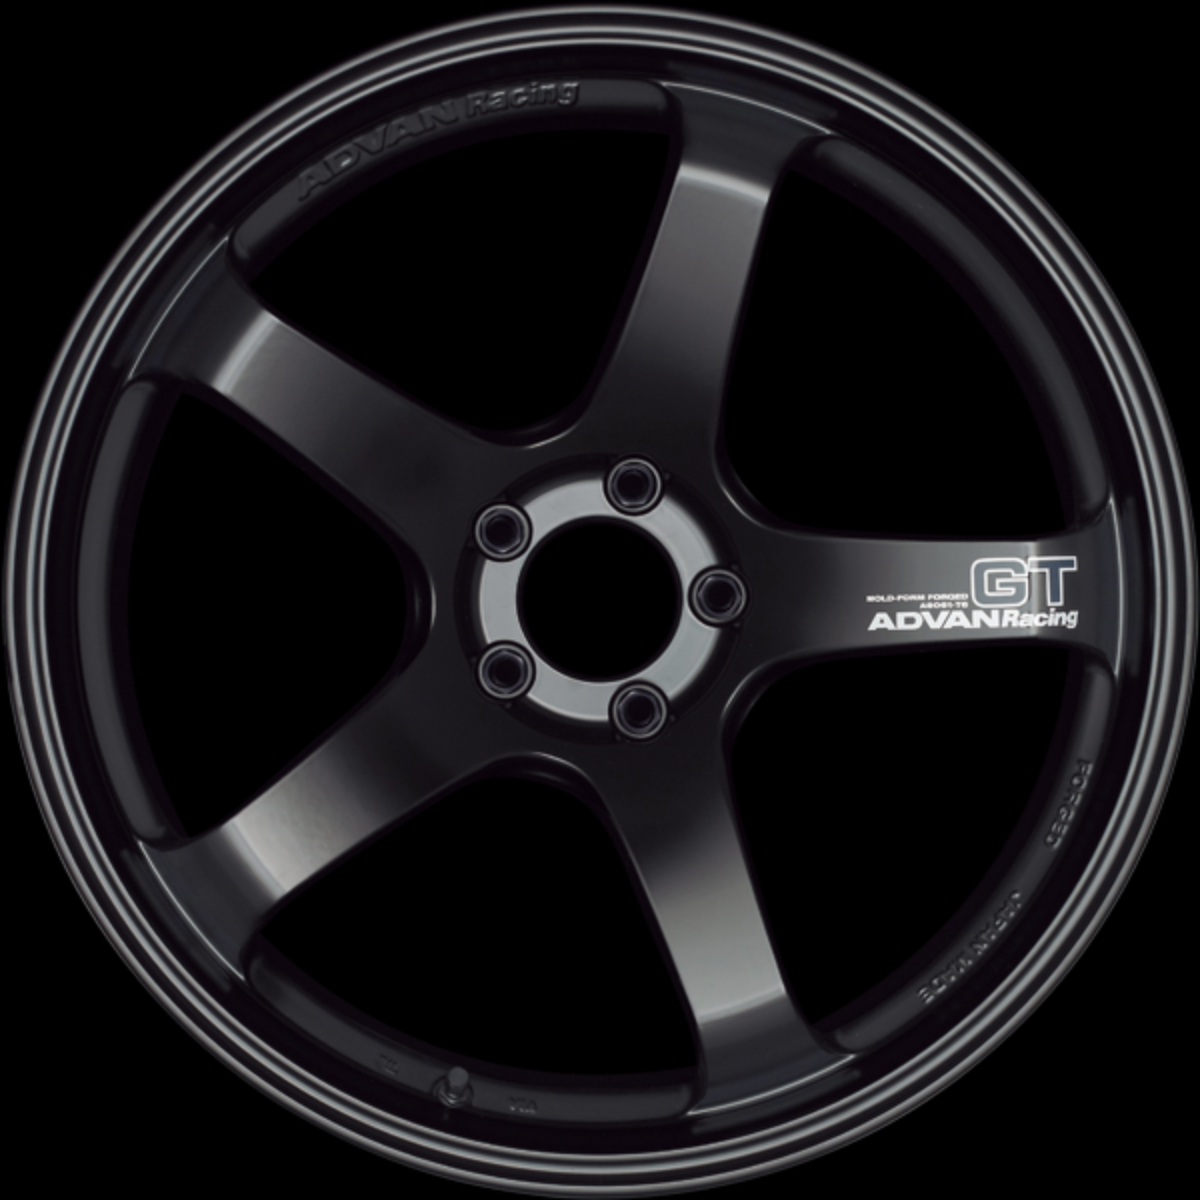 [Set of 4] YOKOHAMA ADVAN Racing GT 20x10.5J +24 5x114.3 SEMI GLOSS BLACK